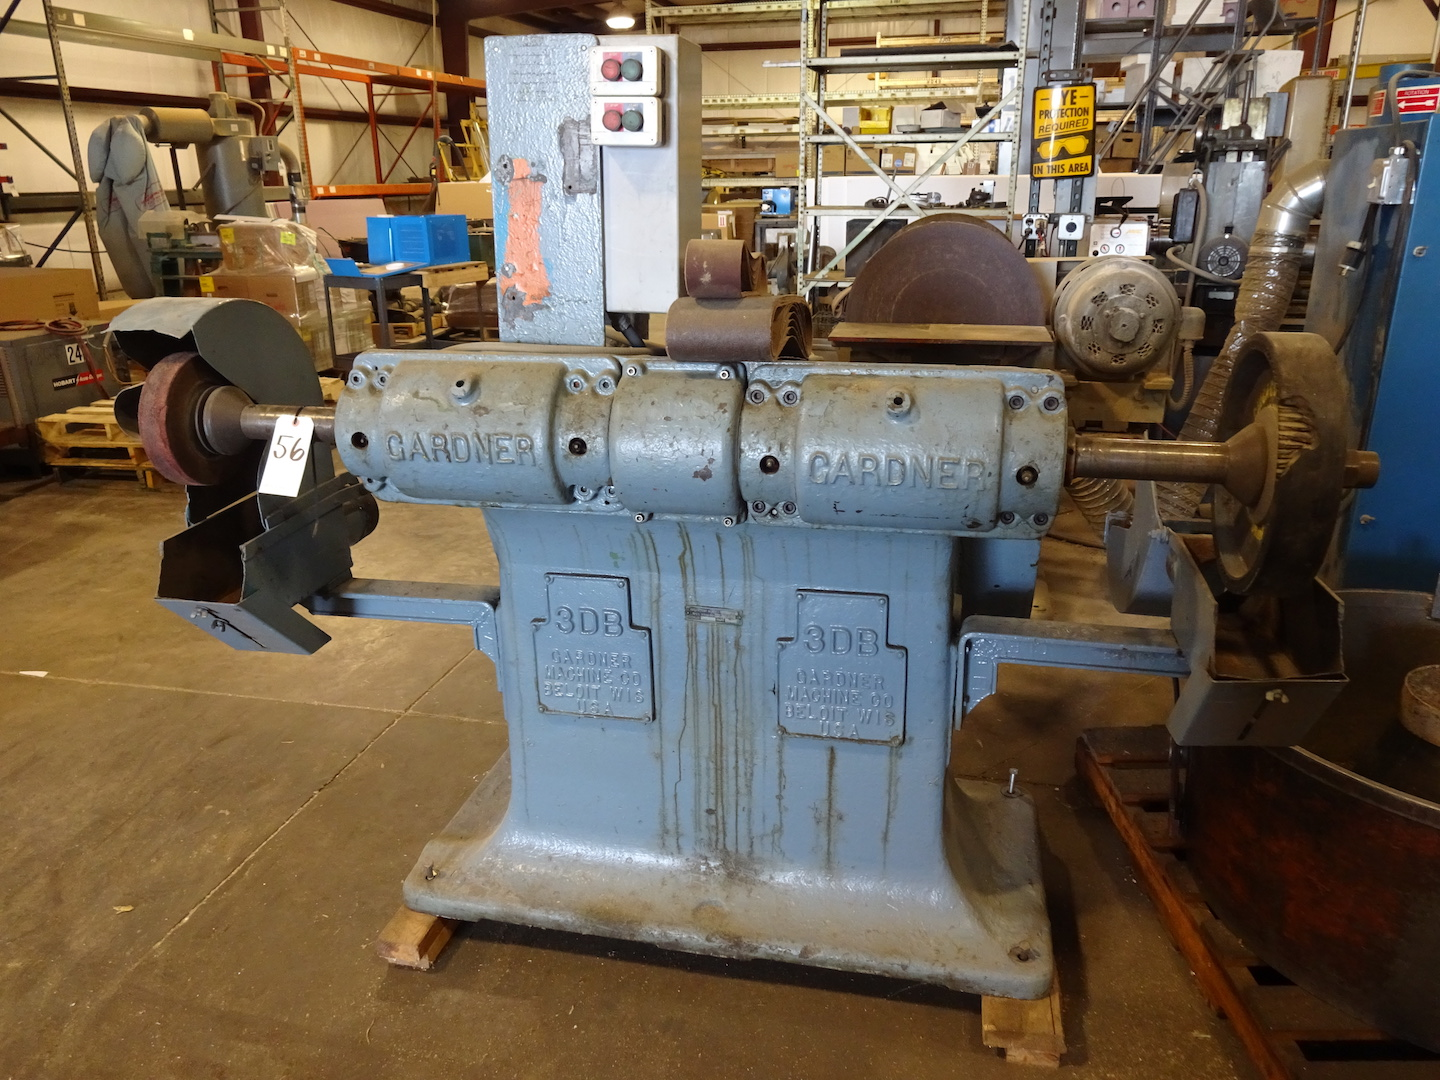 Lot 56 - Gardner Model 3DB Double End Polishing Lathe, S/N 8DB76P, (2) 5 HP Motors, 220/440 Volt